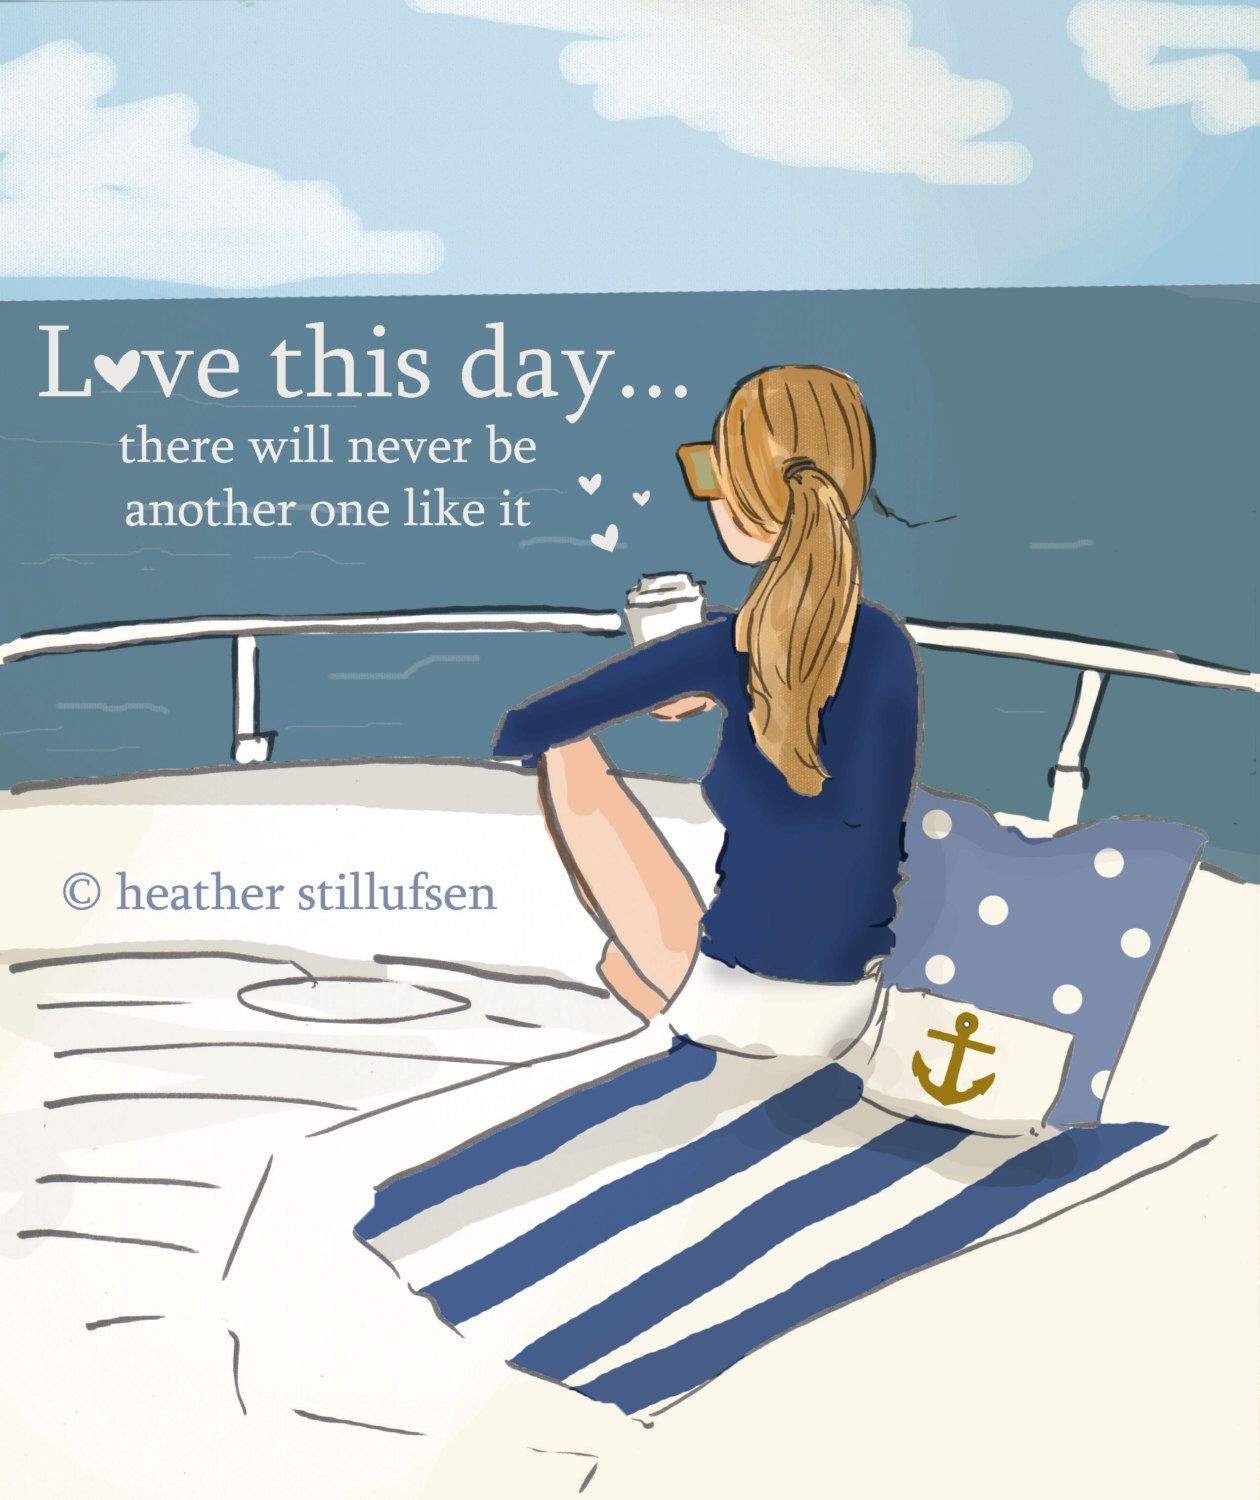 Love this Day -  On the Water- Sailing - Beach -  Digital Art Print -  Wall Art -- Print by RoseHillDesignStudio on Etsy https://www.etsy.com/listing/246908409/love-this-day-on-the-water-sailing-beach